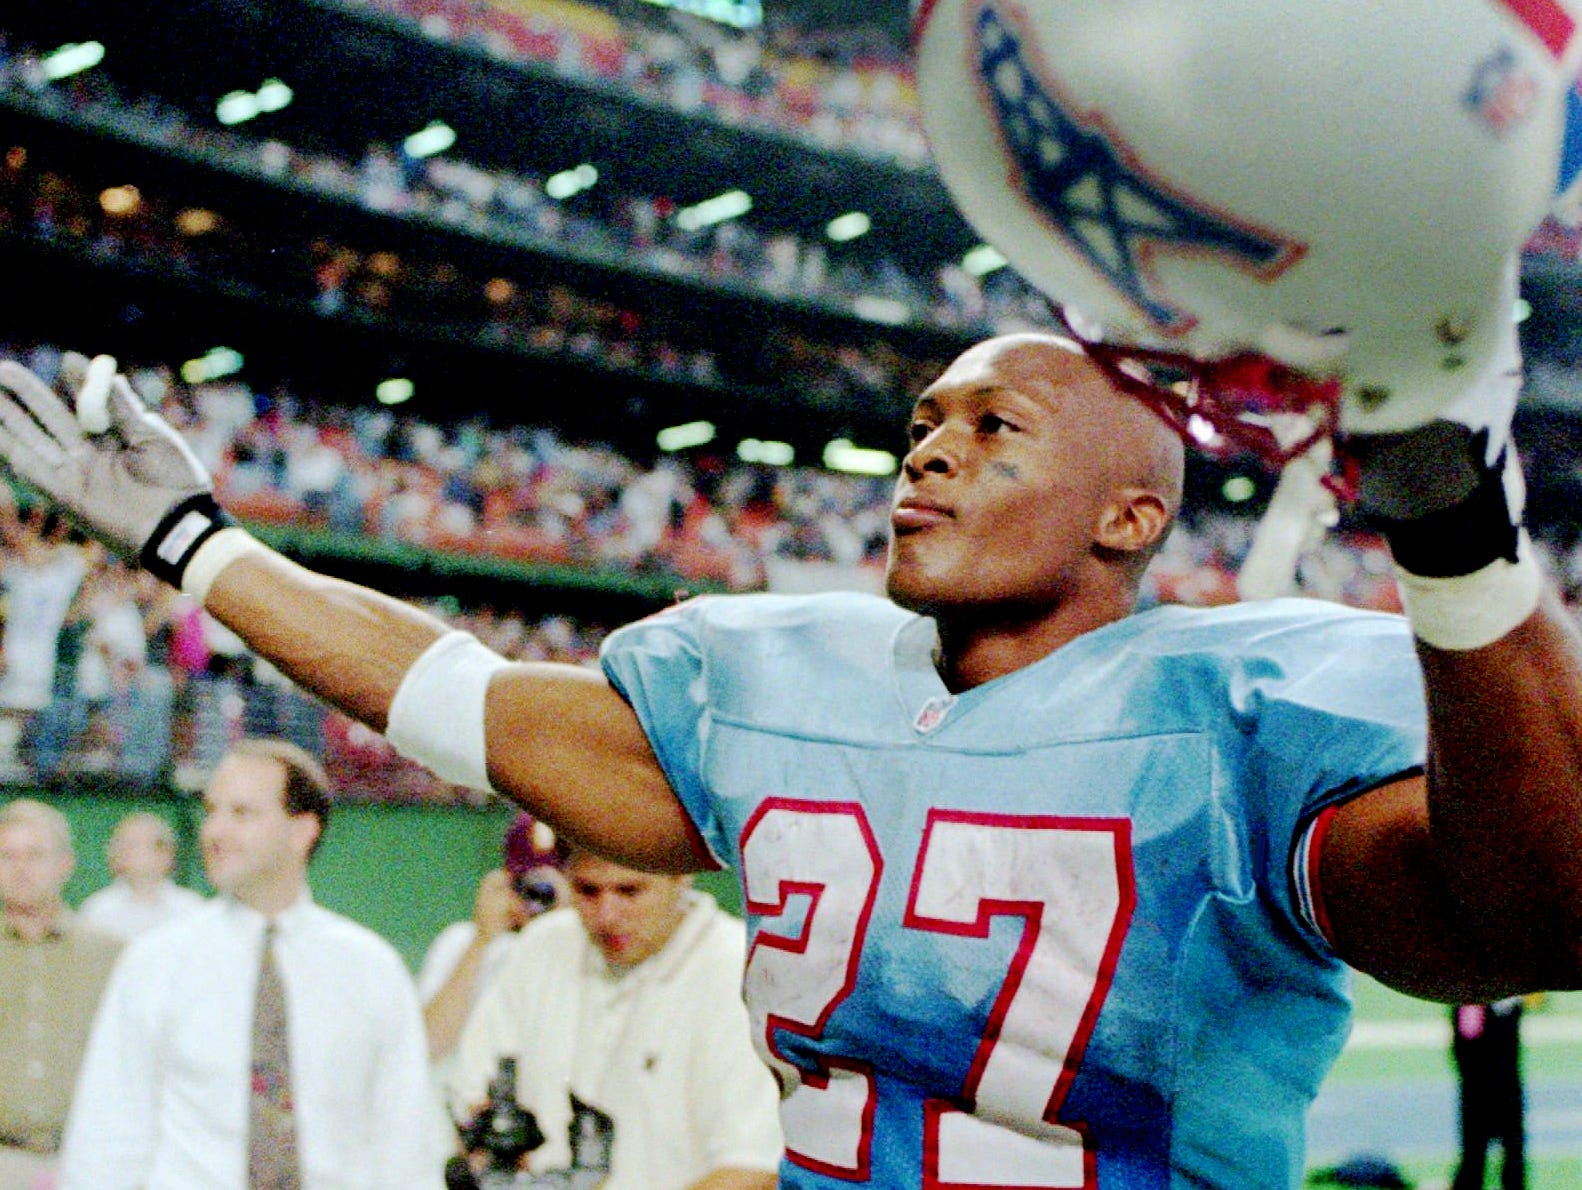 Houston Oilers Eddie George (27) celebrates with fans after the Oilers defeated the Pittsburgh Steelers 23-13 Oct. 20, 1996 in Houston. The rookie running back gained 65 yards and scored the final touchdown of the game.